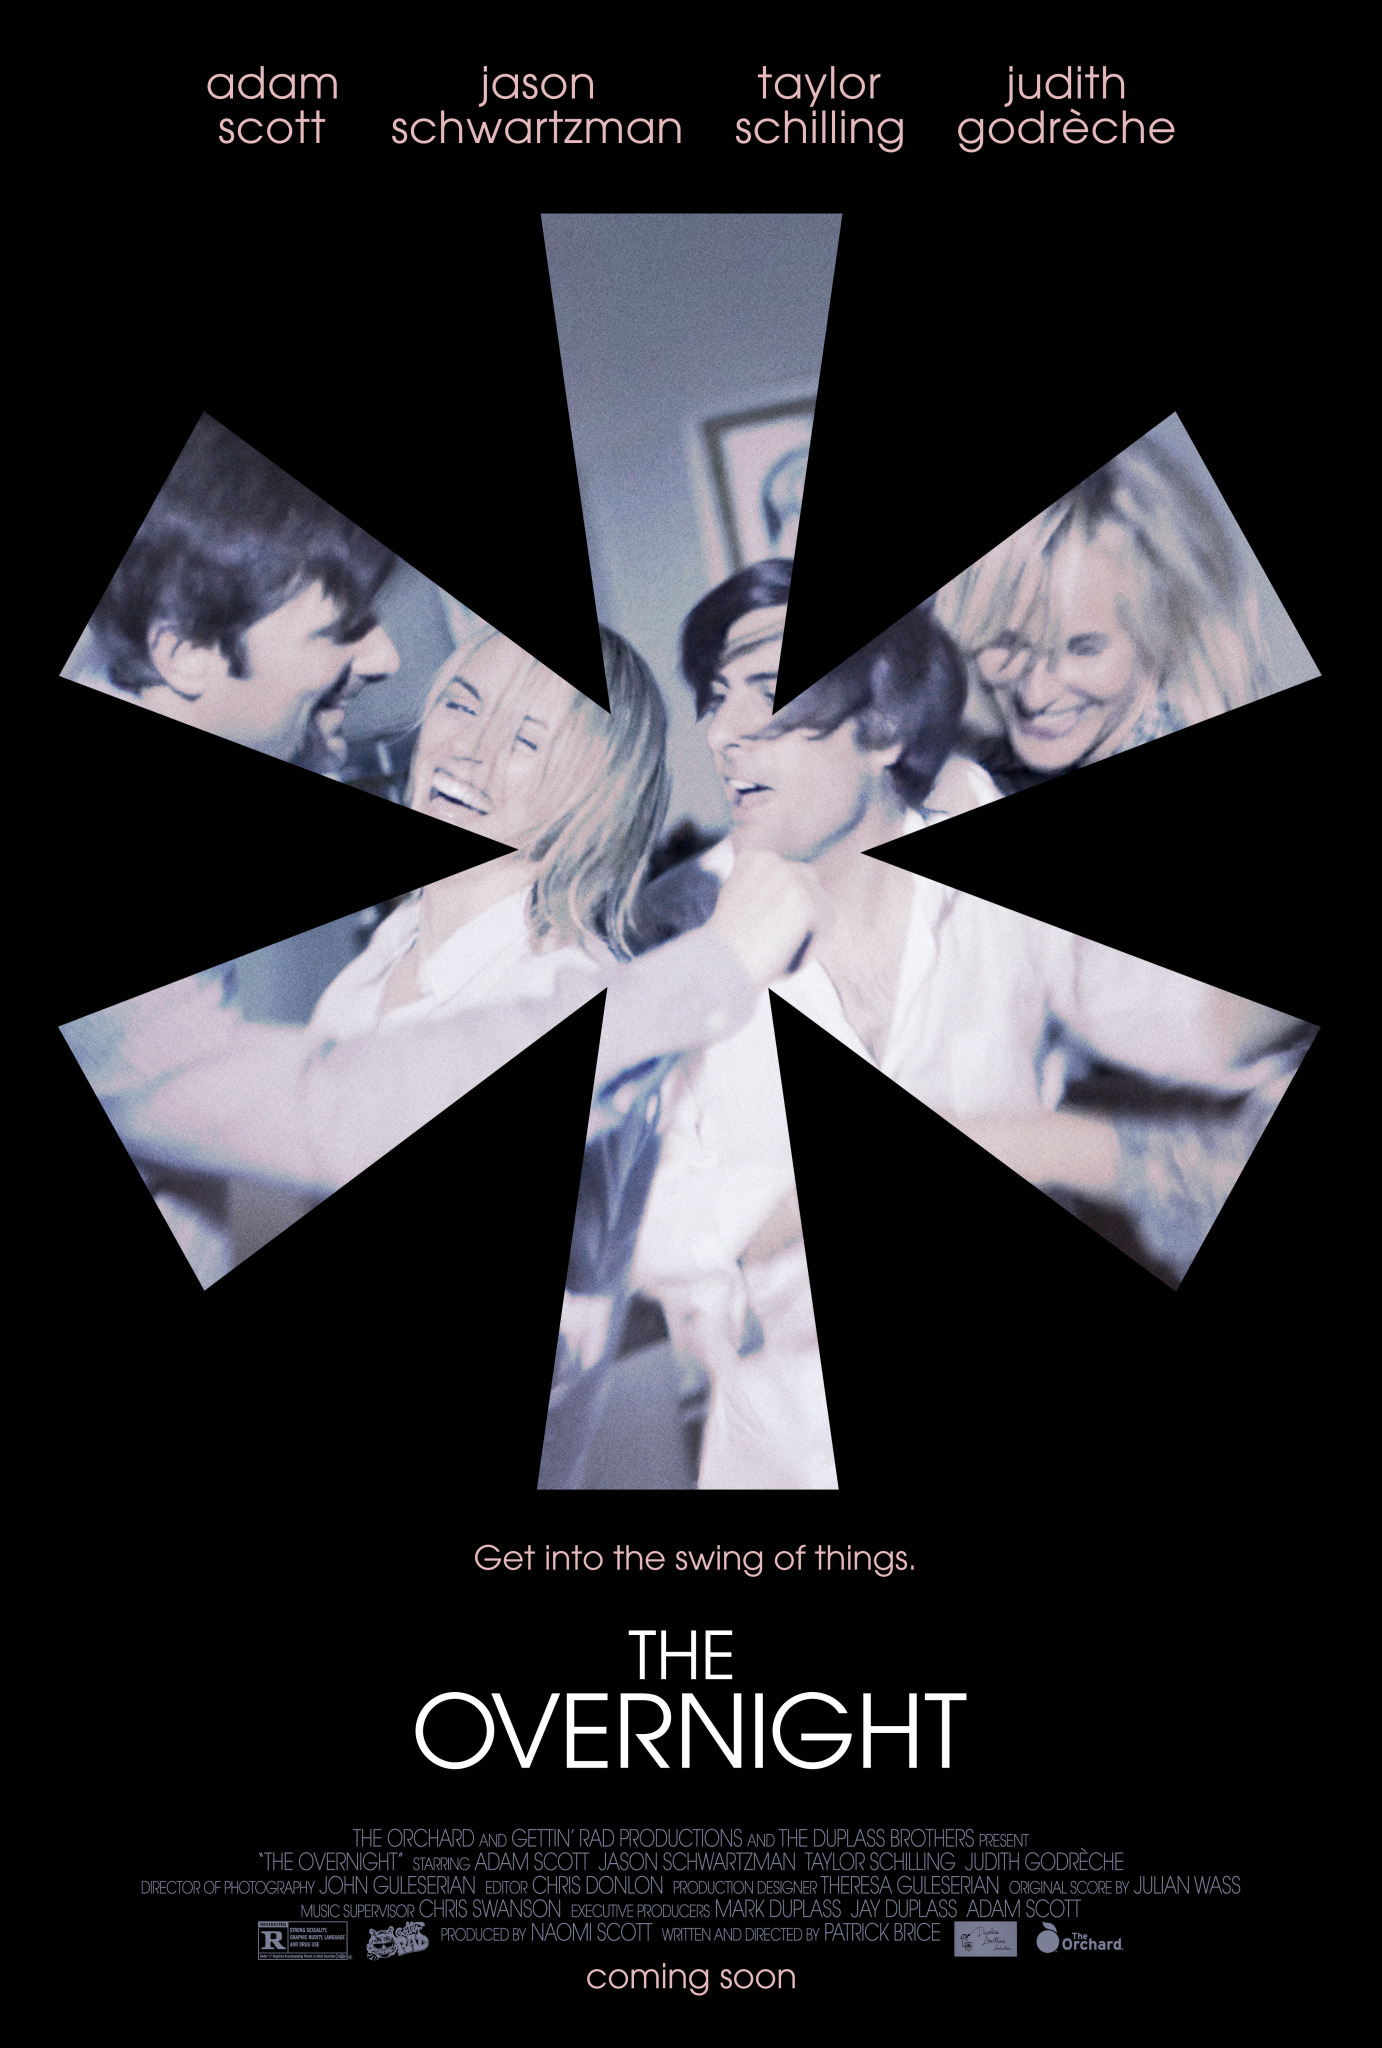 the overnight poster art Top 25 Films of 2015